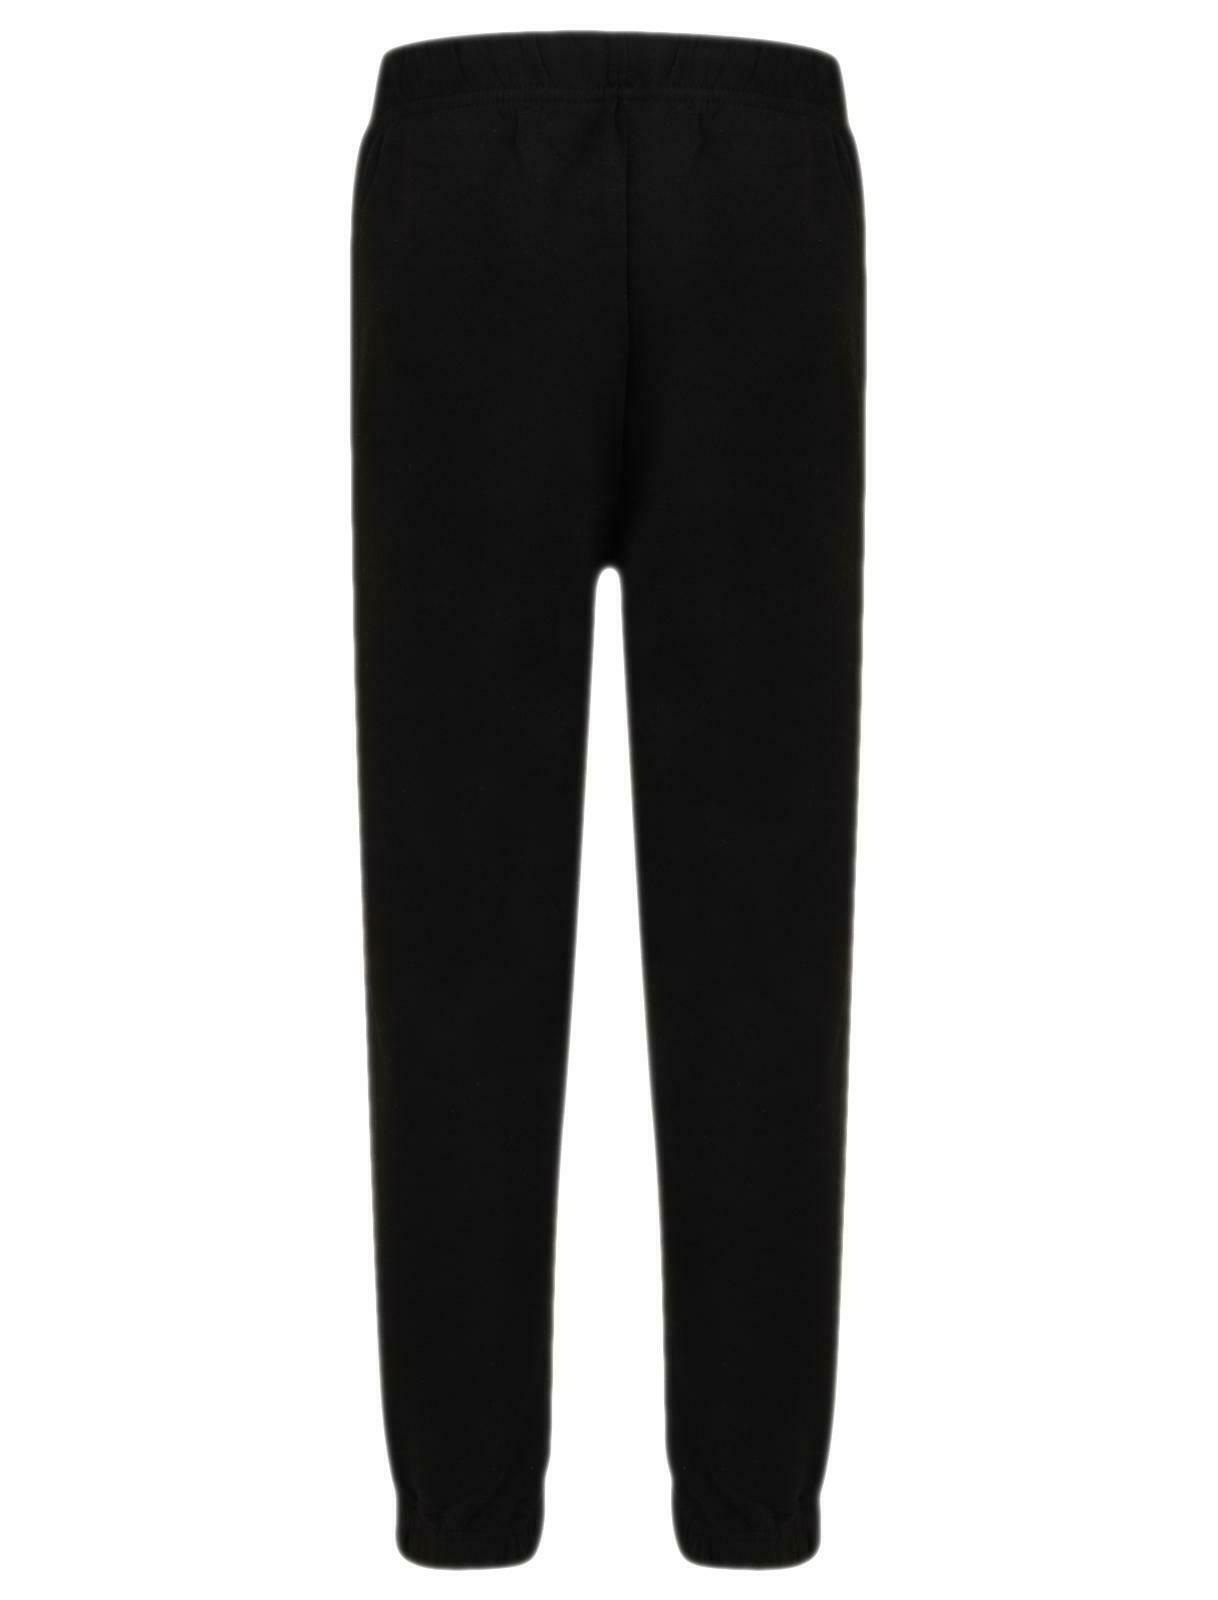 Kids Fleece Trouser Black